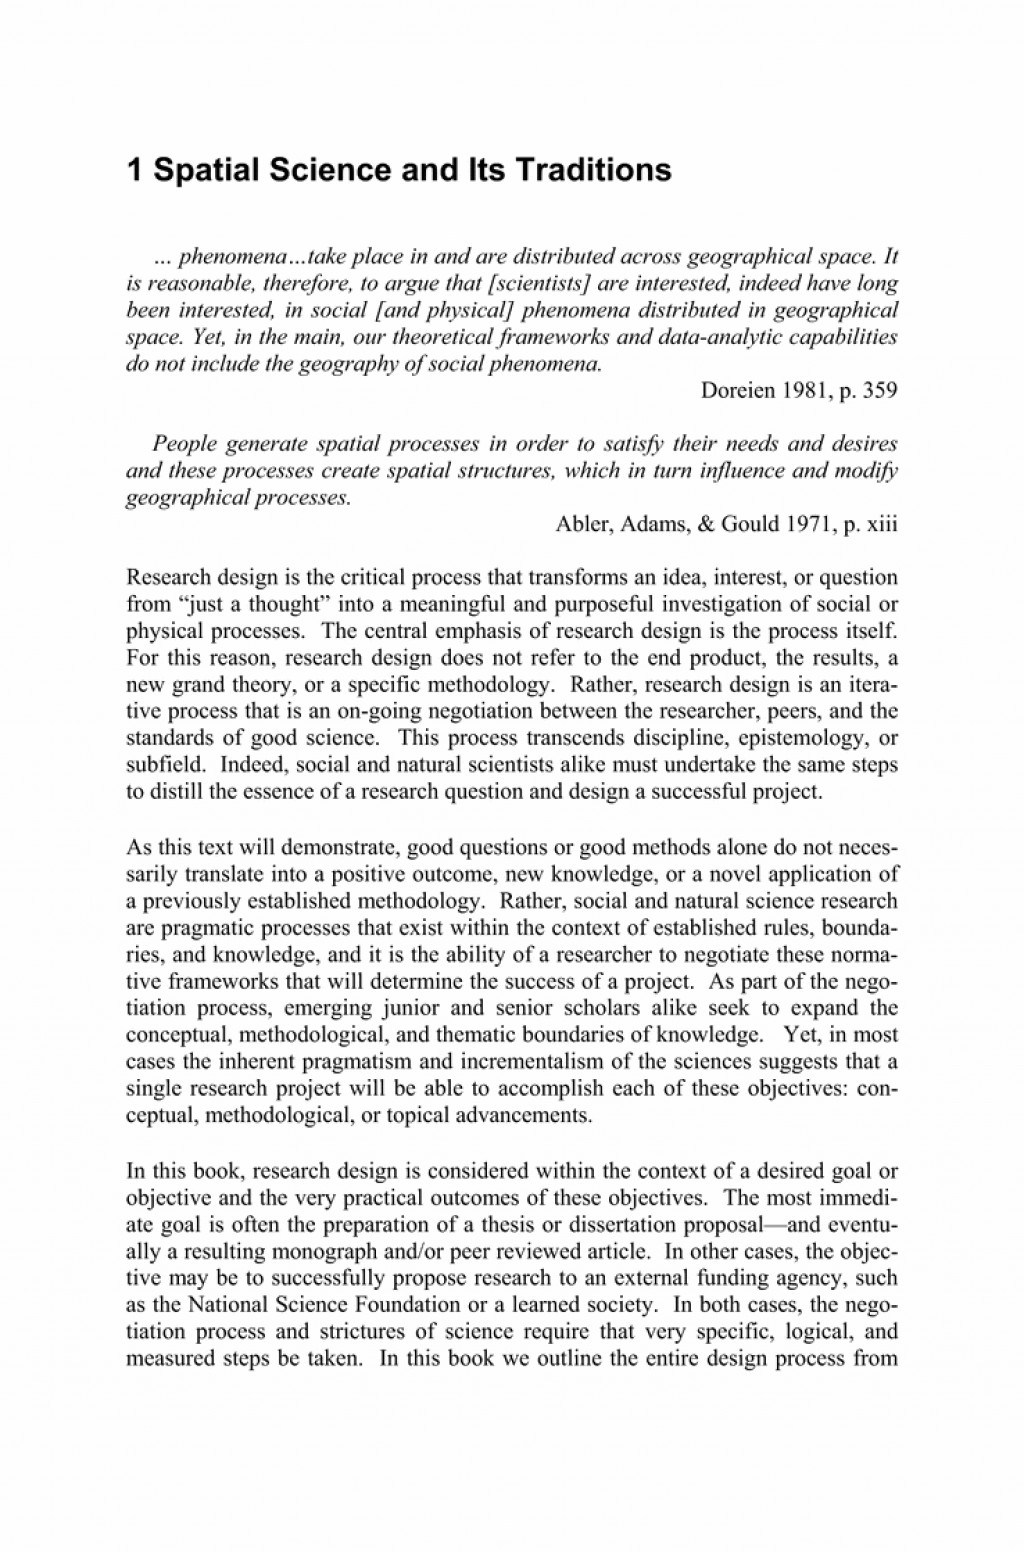 004 Research Paper How To Write Scientific Sensational Pdf And Publish A Computer Science Large